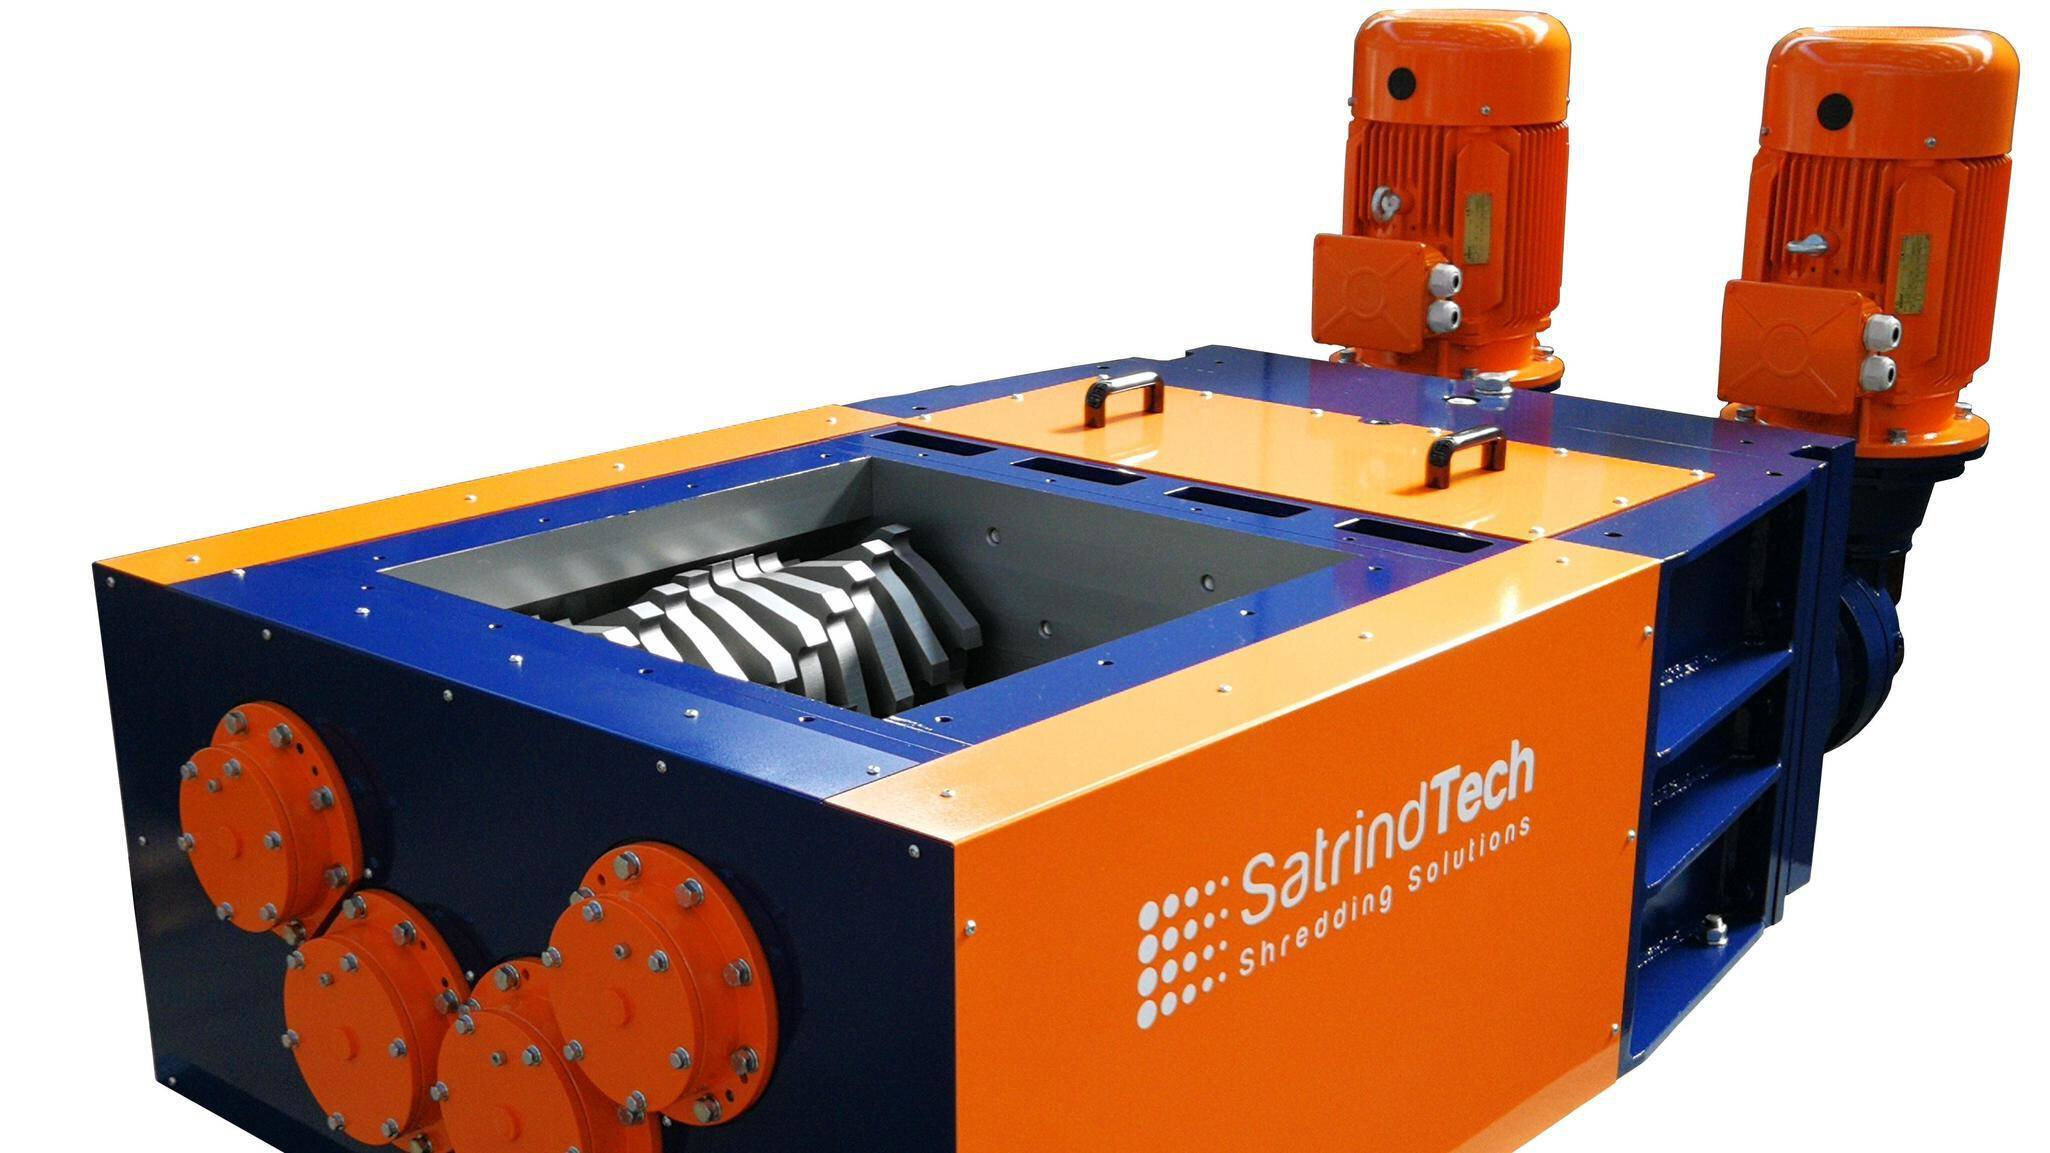 Gallery image 1 - Elictric-drive four shaft shredder 4S; modular construction combining various motorizations and blade thickness.